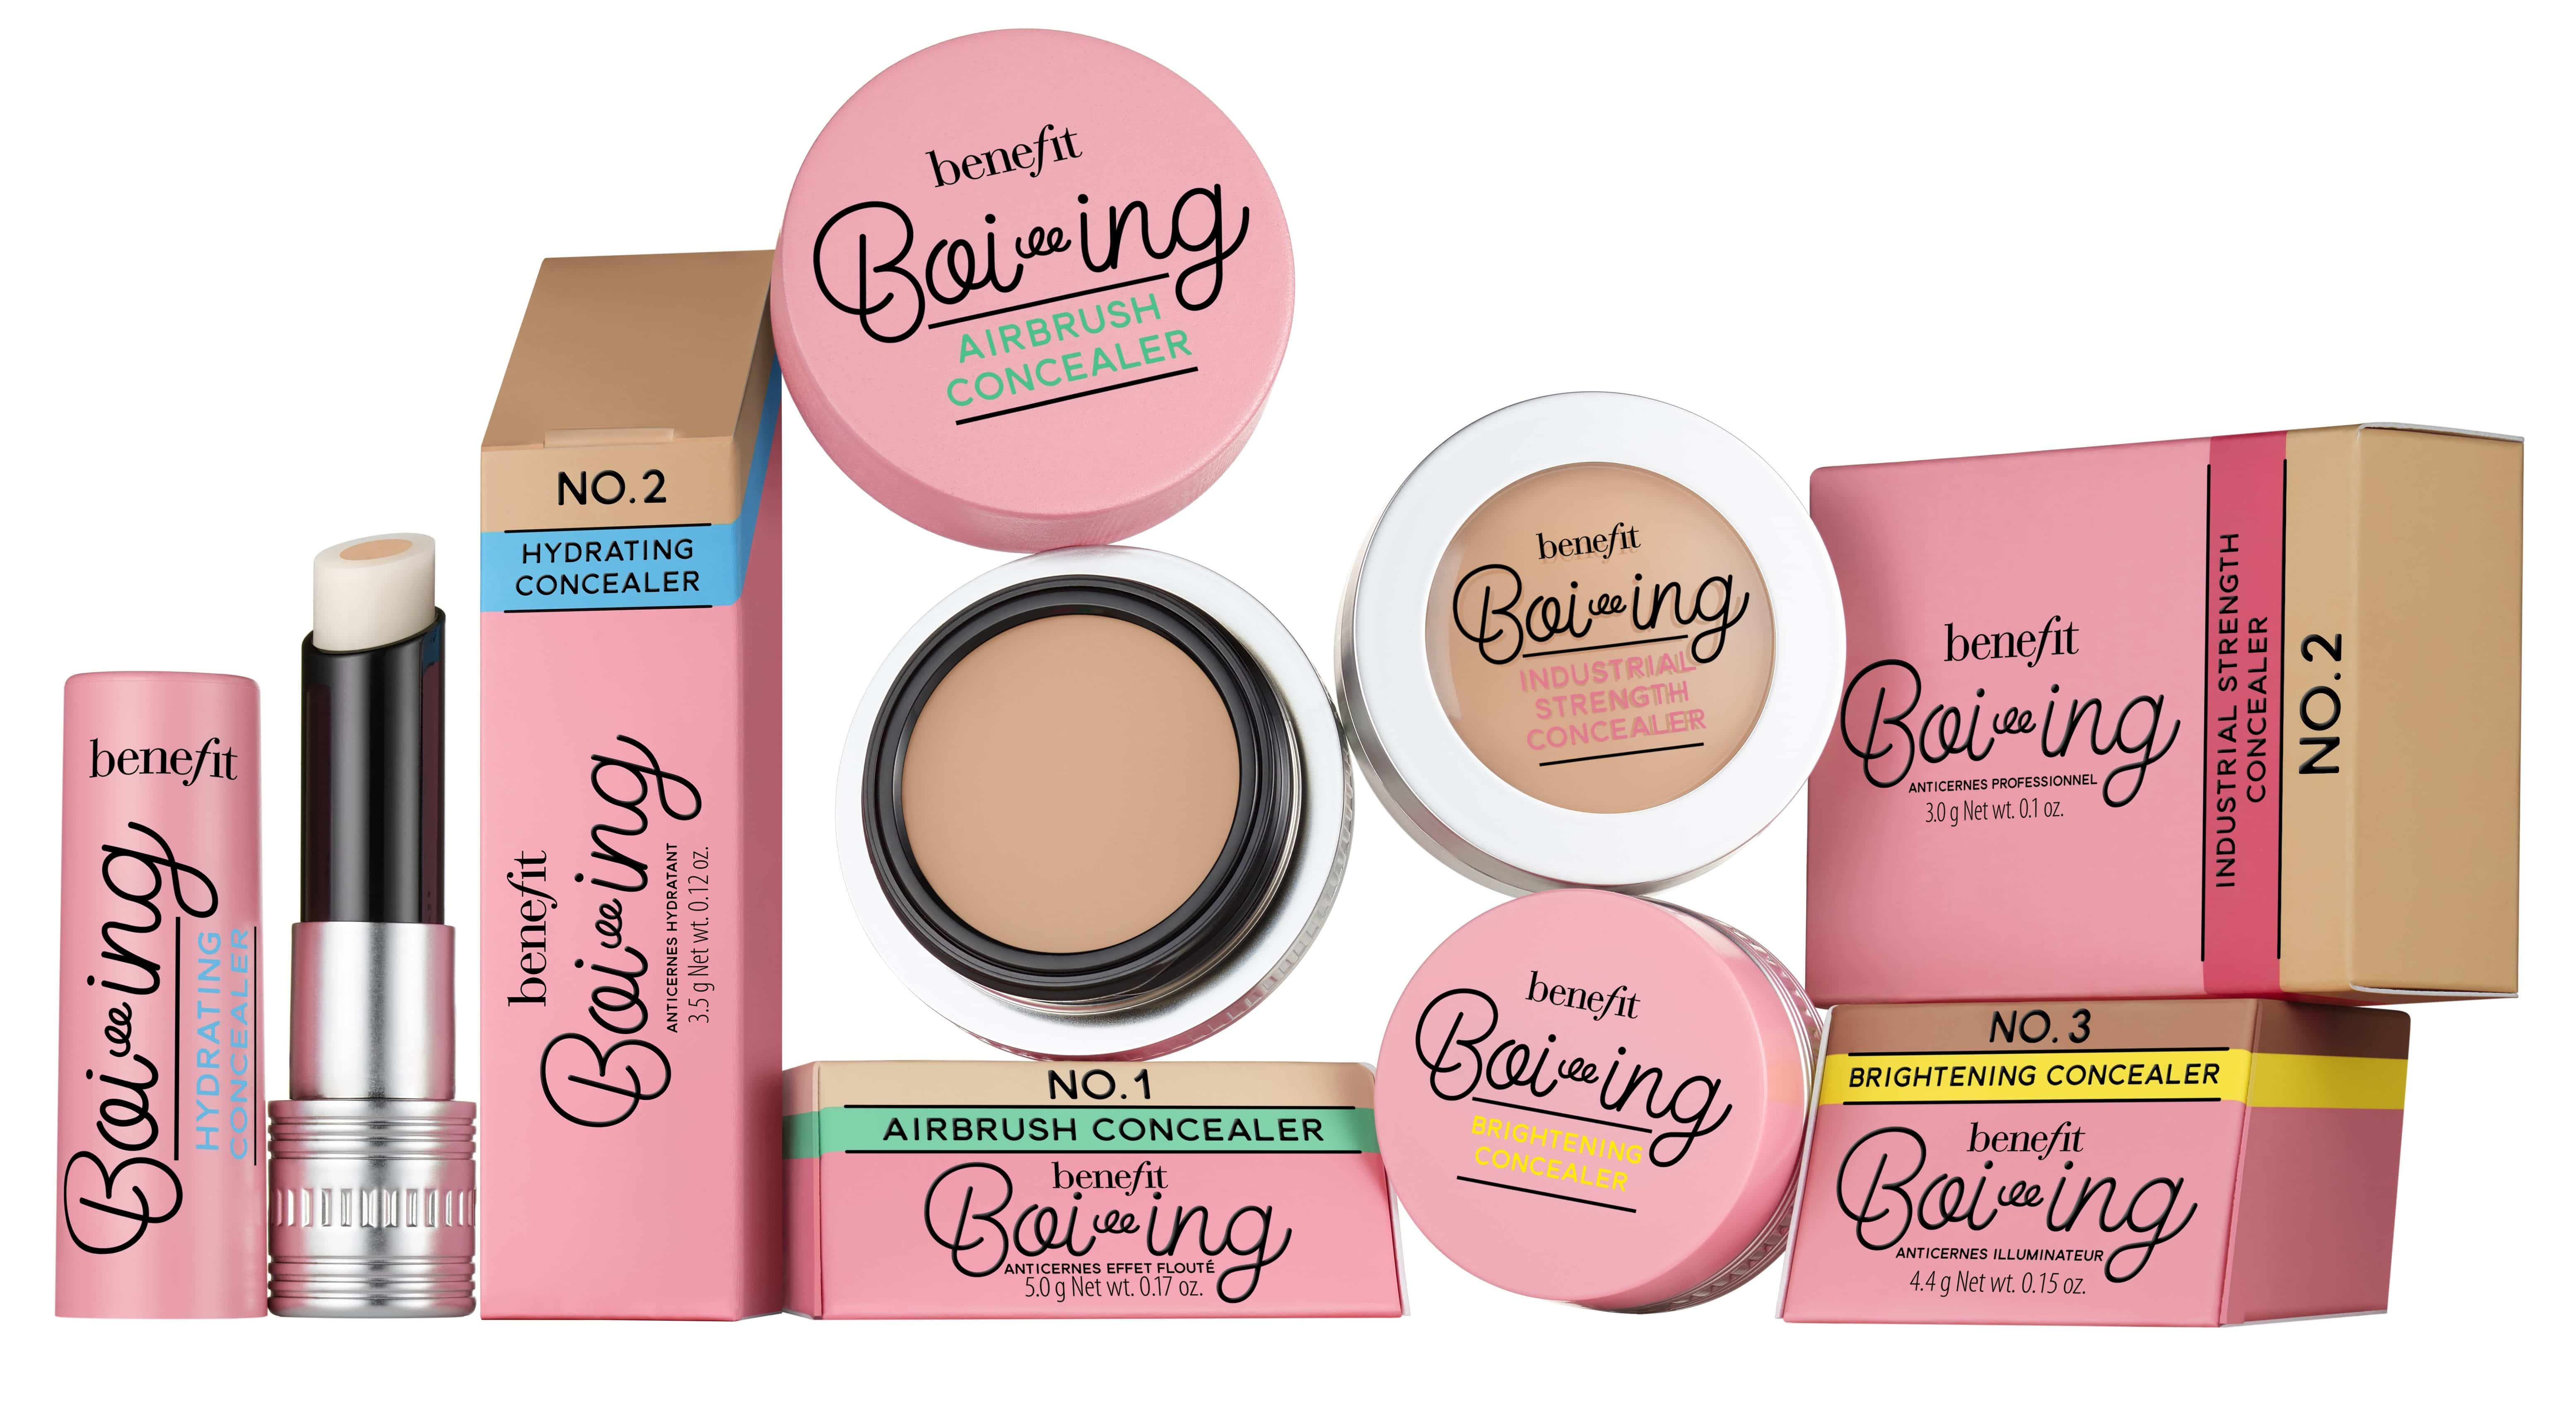 Benefit Cosmetics, tutte le novità make-up per la Primavera-Estate 2017 - Correttori Boi-ing